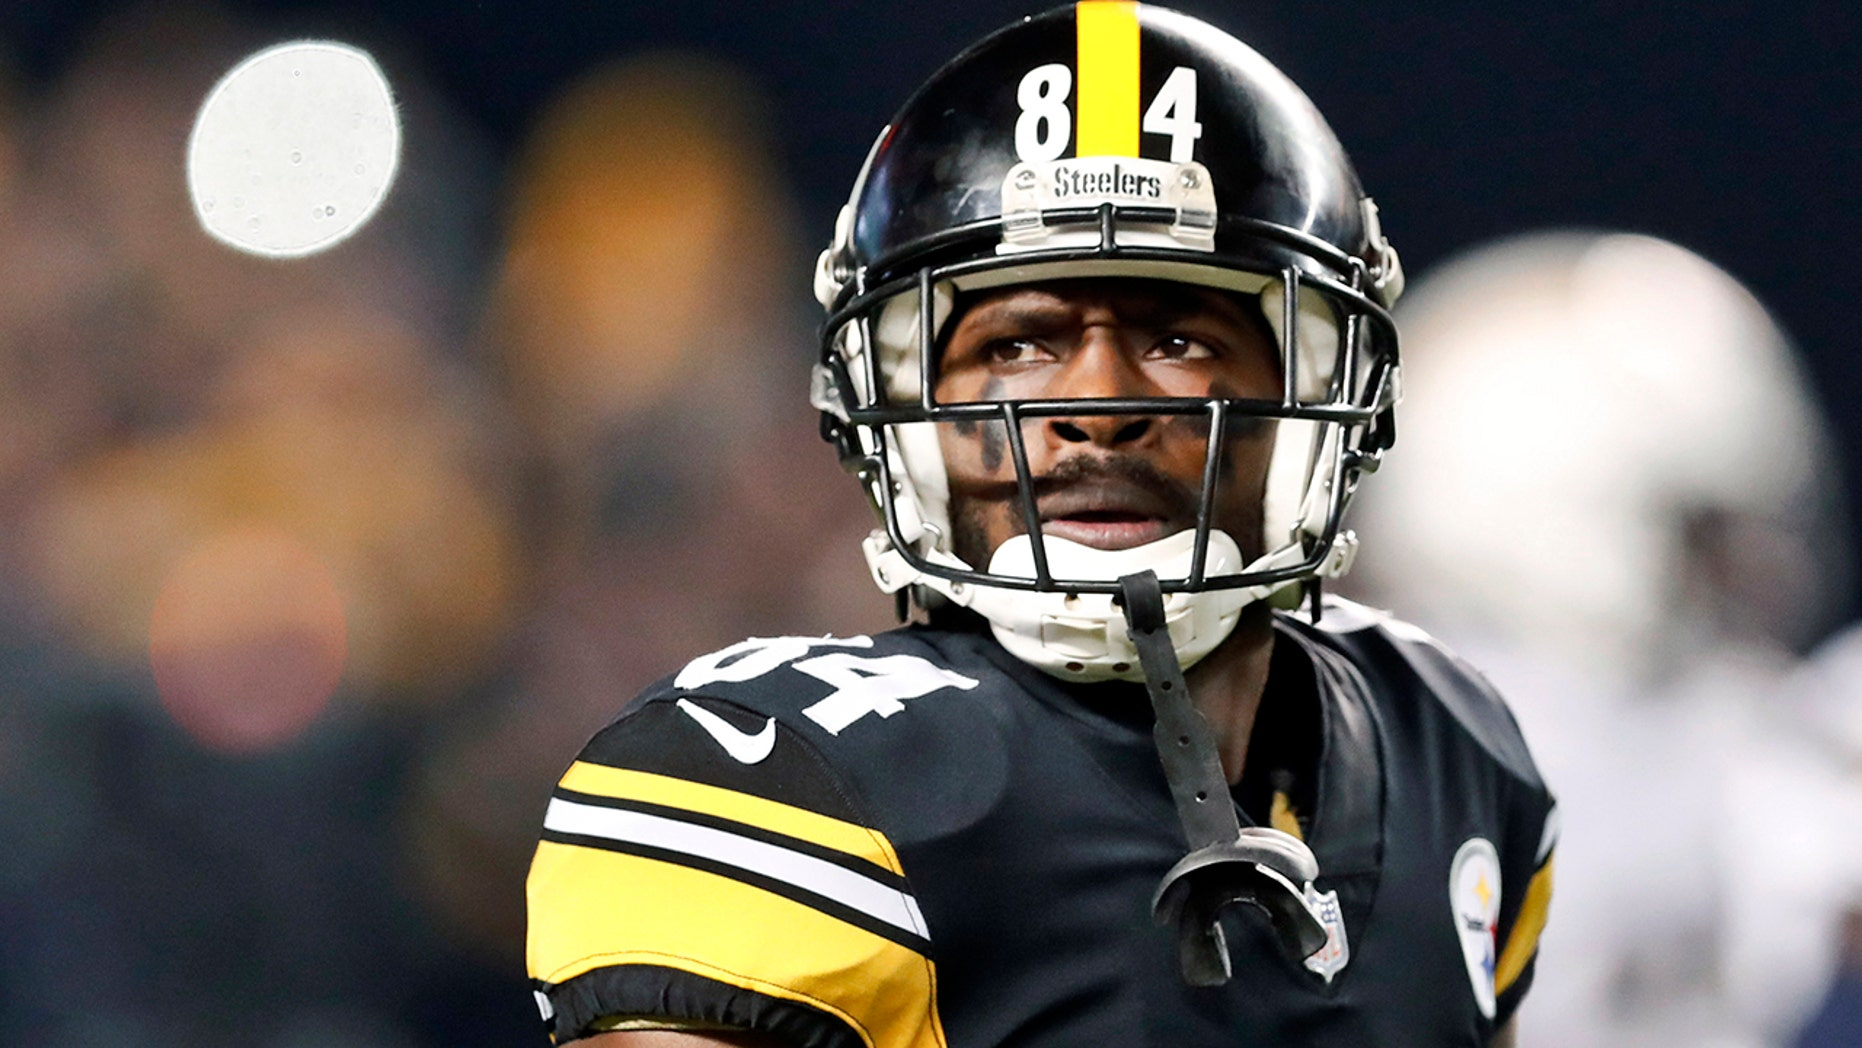 Pittsburgh Steelers wide receiver Antonio Brown (84) plays against the Los Angeles Chargers in an NFL football game in Pittsburgh, Dec. 2, 2018. (Associated Press)